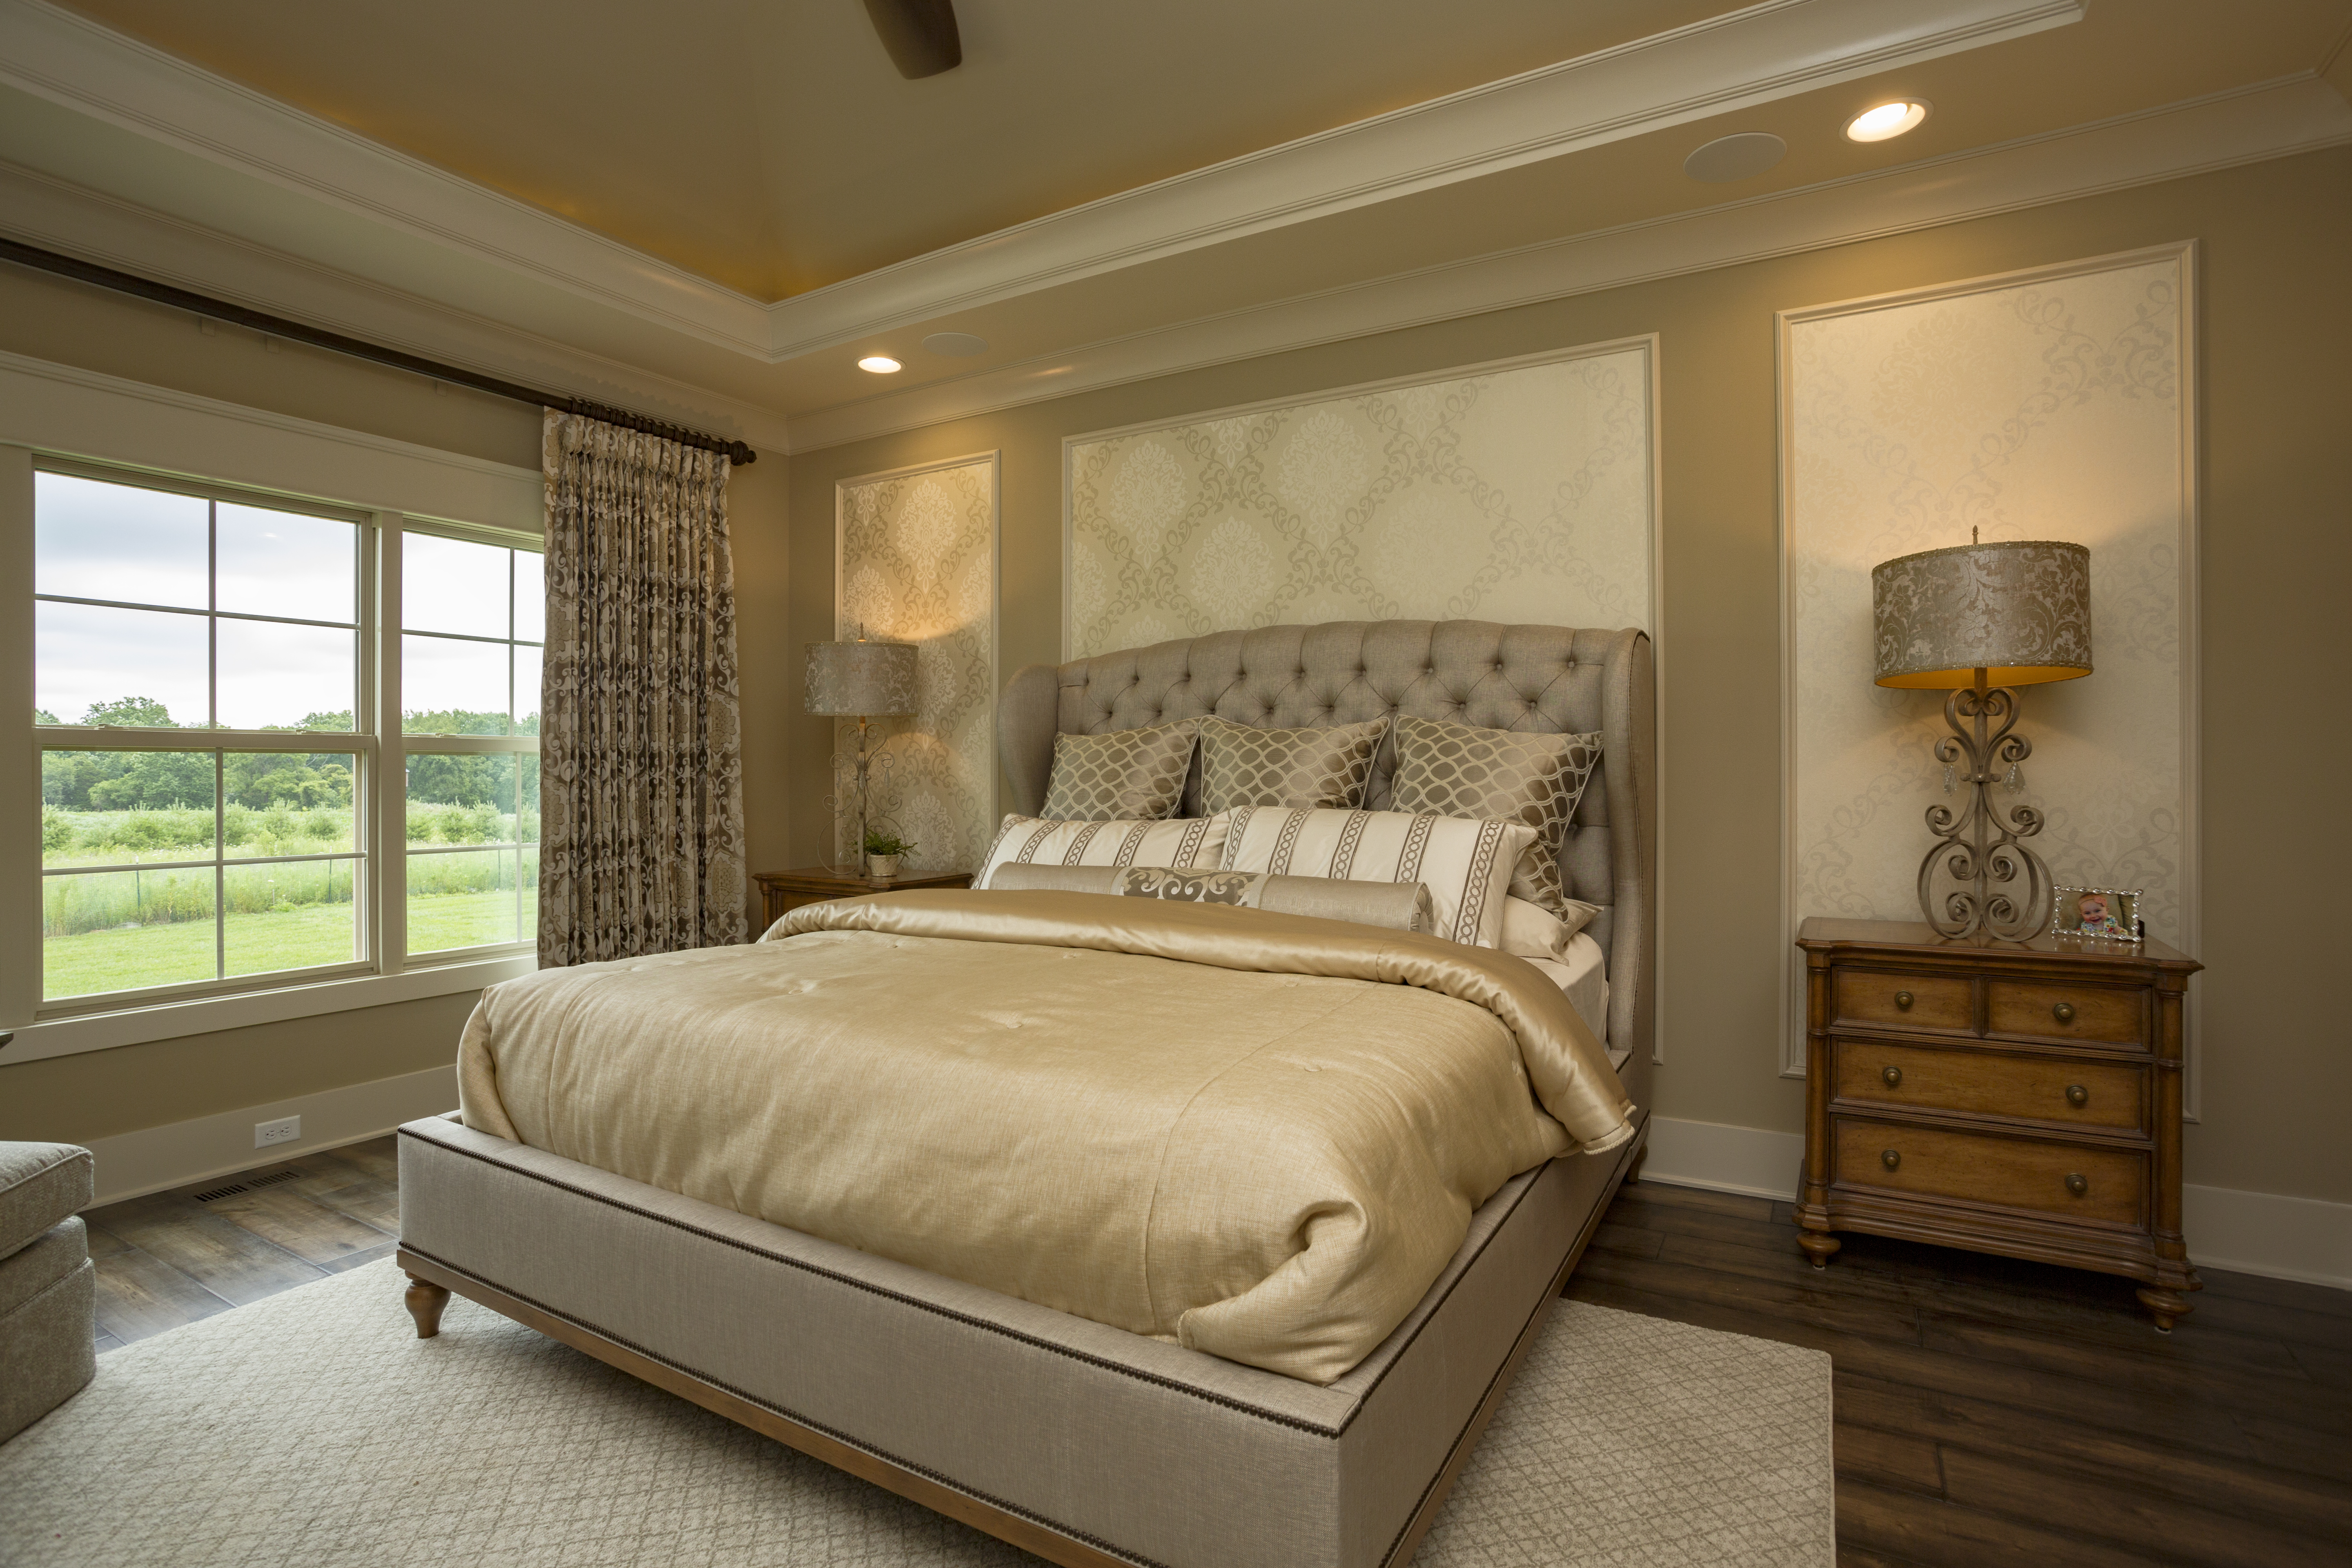 A Glamourous Master Suite With Gold Tones And Gorgeous Details